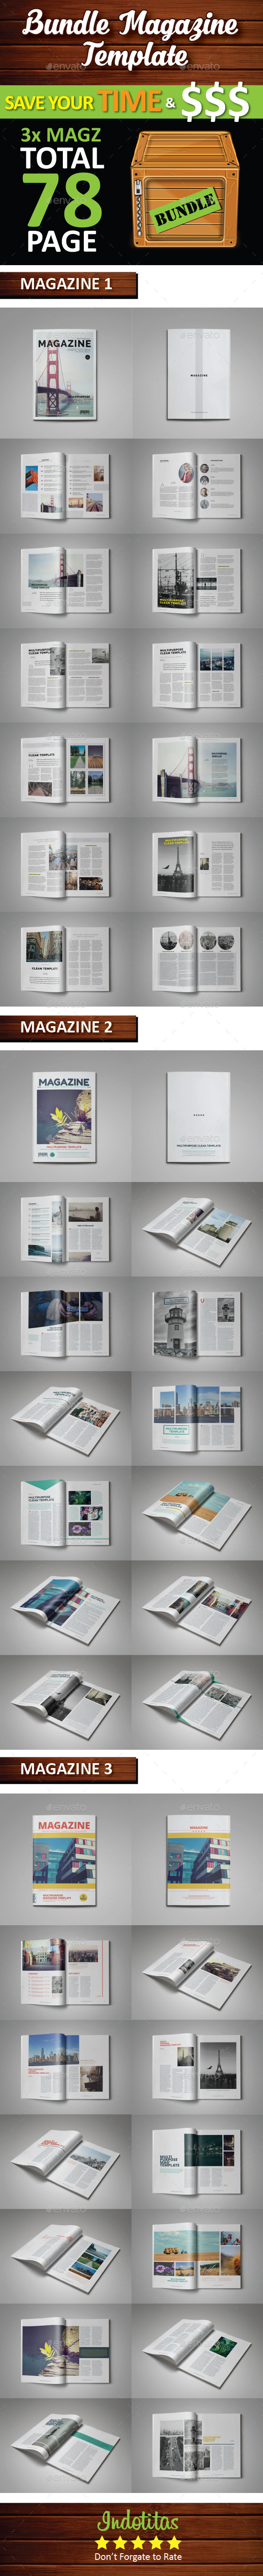 Bundle Magazine Template - Magazines Print Templates